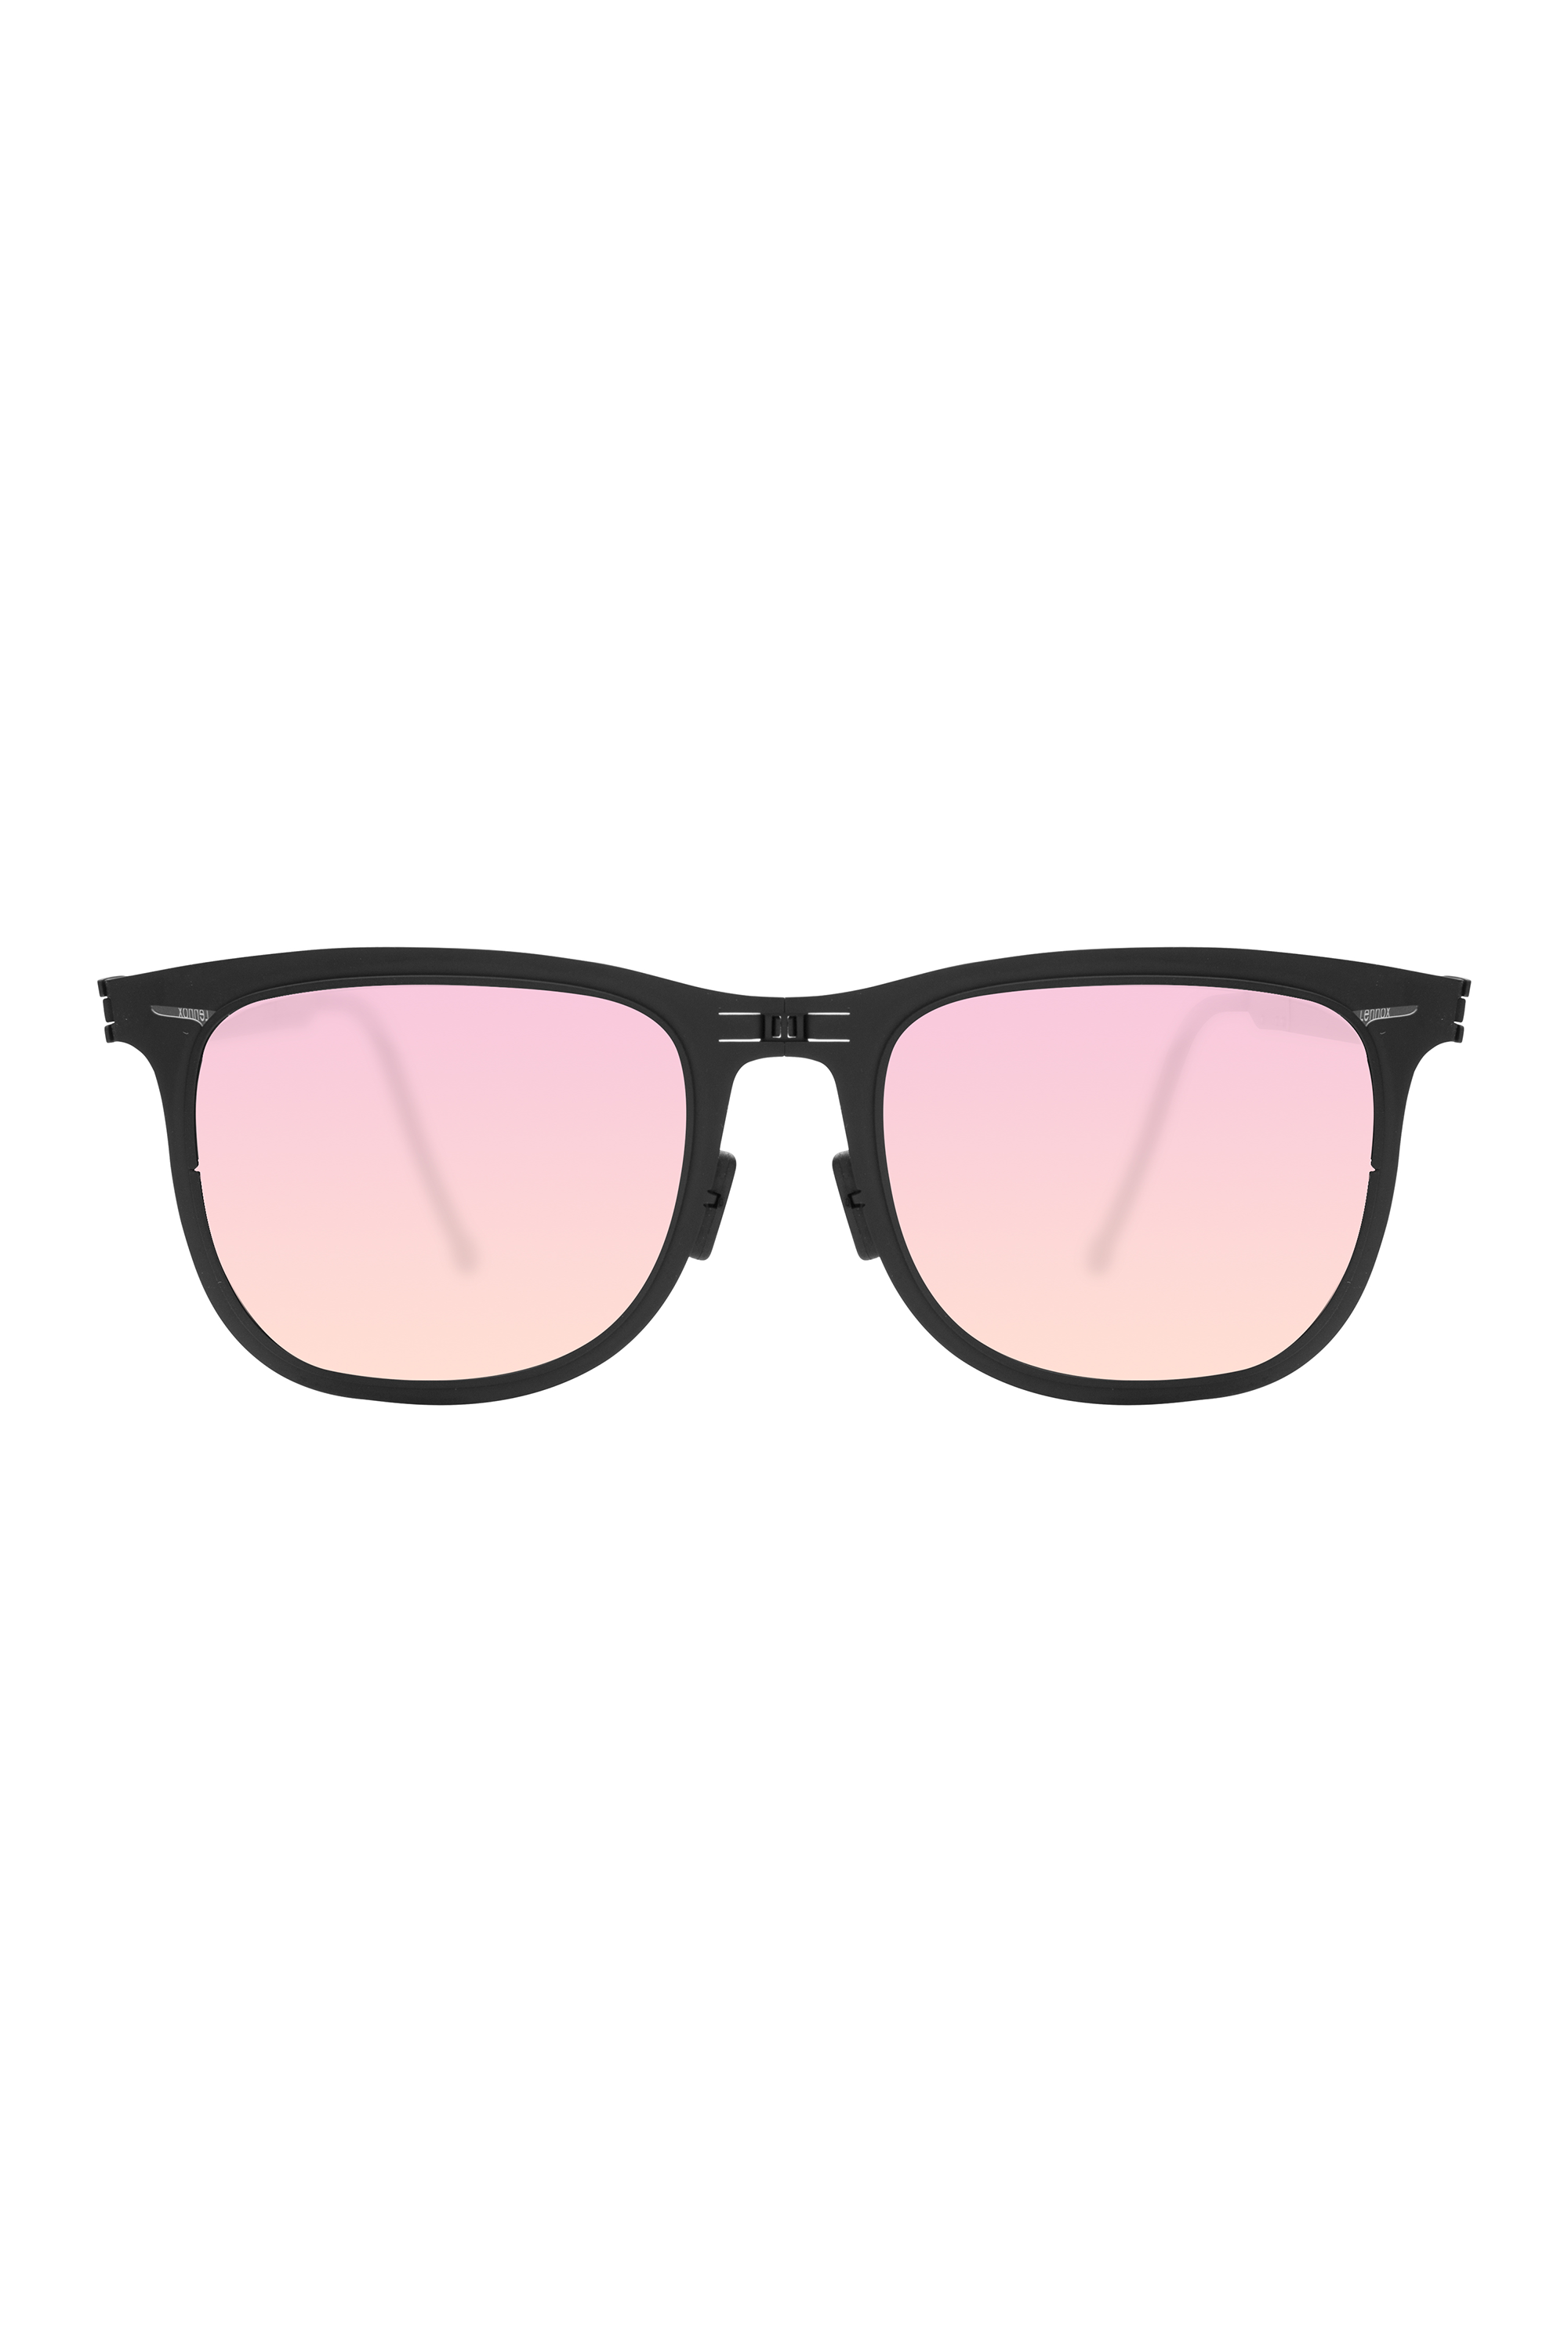 ROAV Folding Sunglasses - Lennox